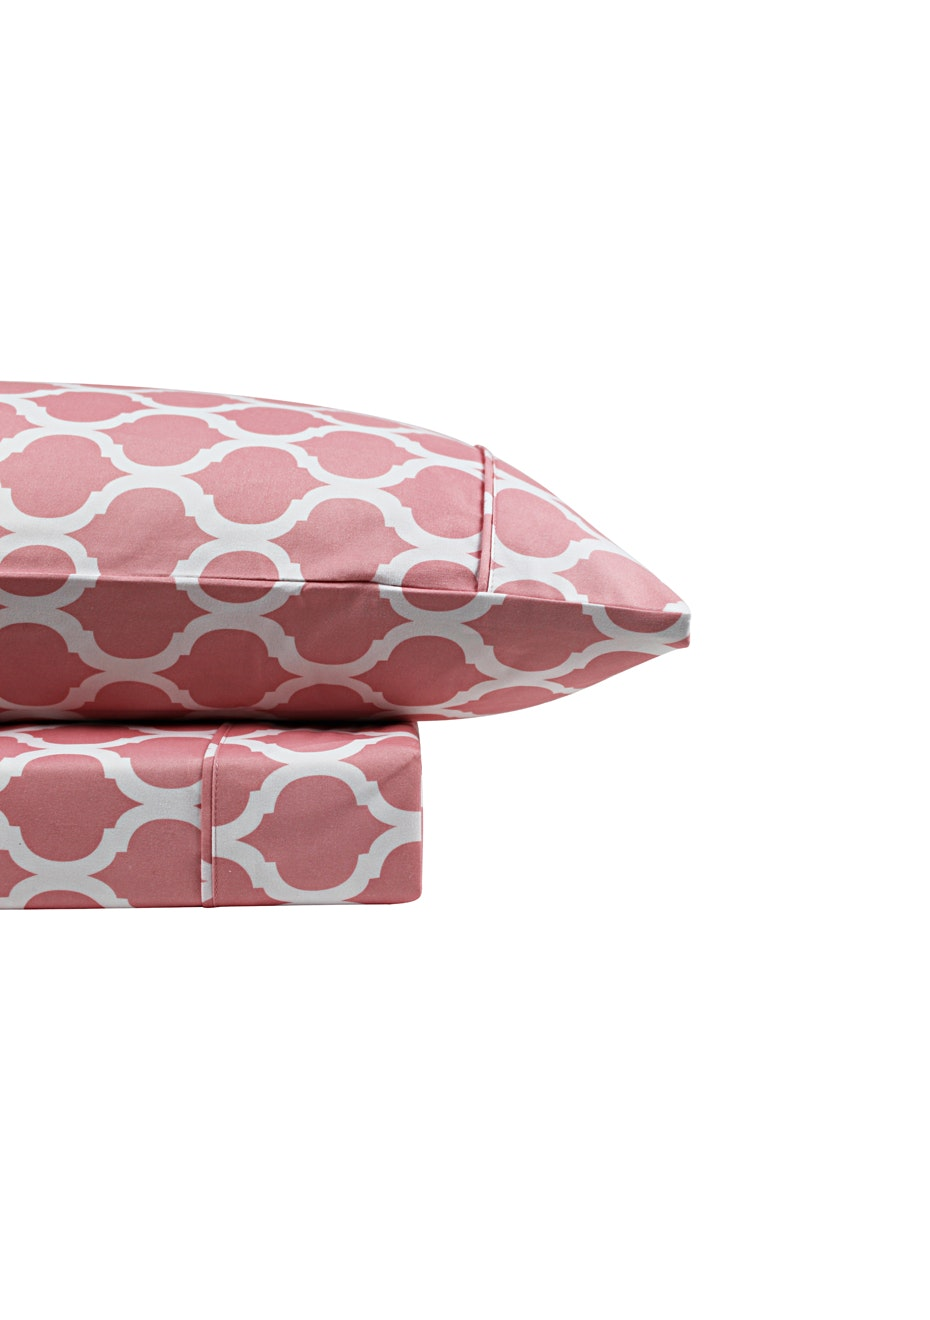 Thermal Flannel Sheet Sets - Morocco Design - Blossom - Single Bed